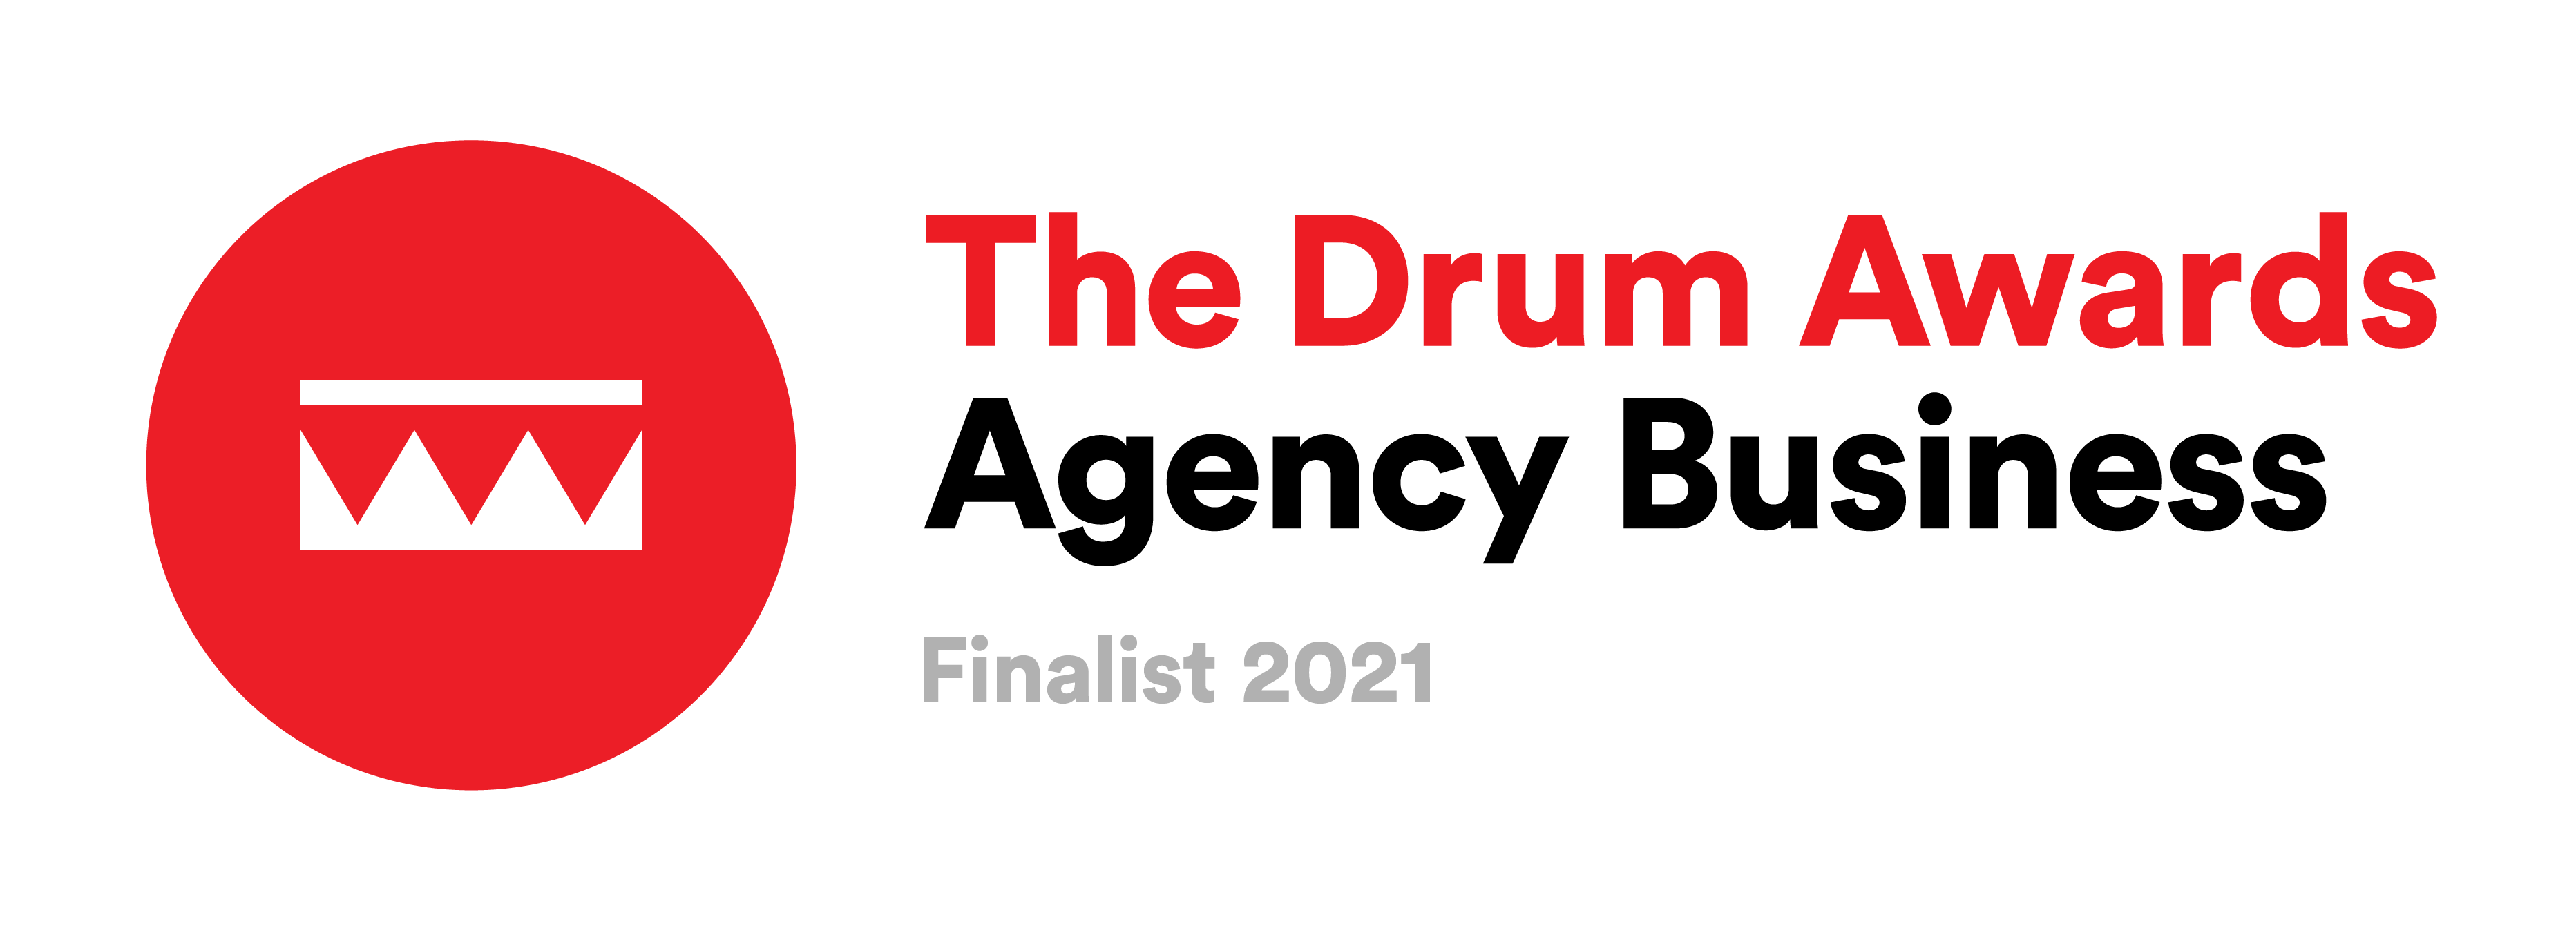 The Drum Awards | Agency Business Finalist 2021